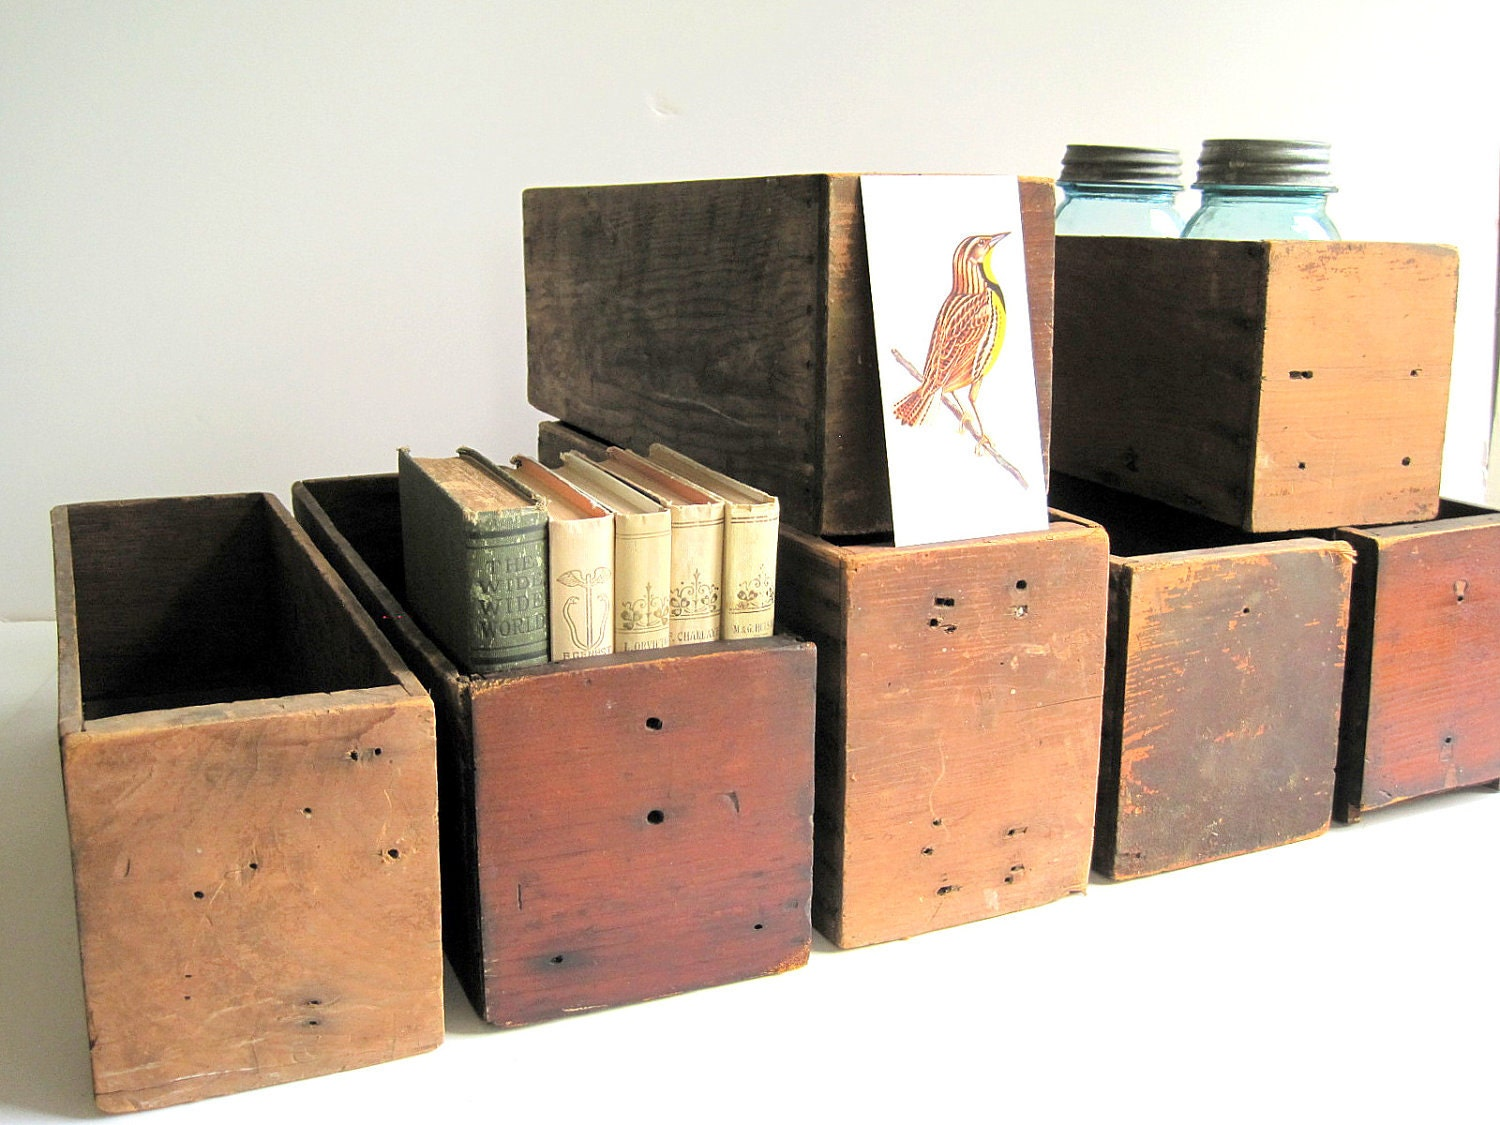 Vintage Wood Bins Stacking Crates Cubbies / Industrial Storage Organization - BirdinHandVTG